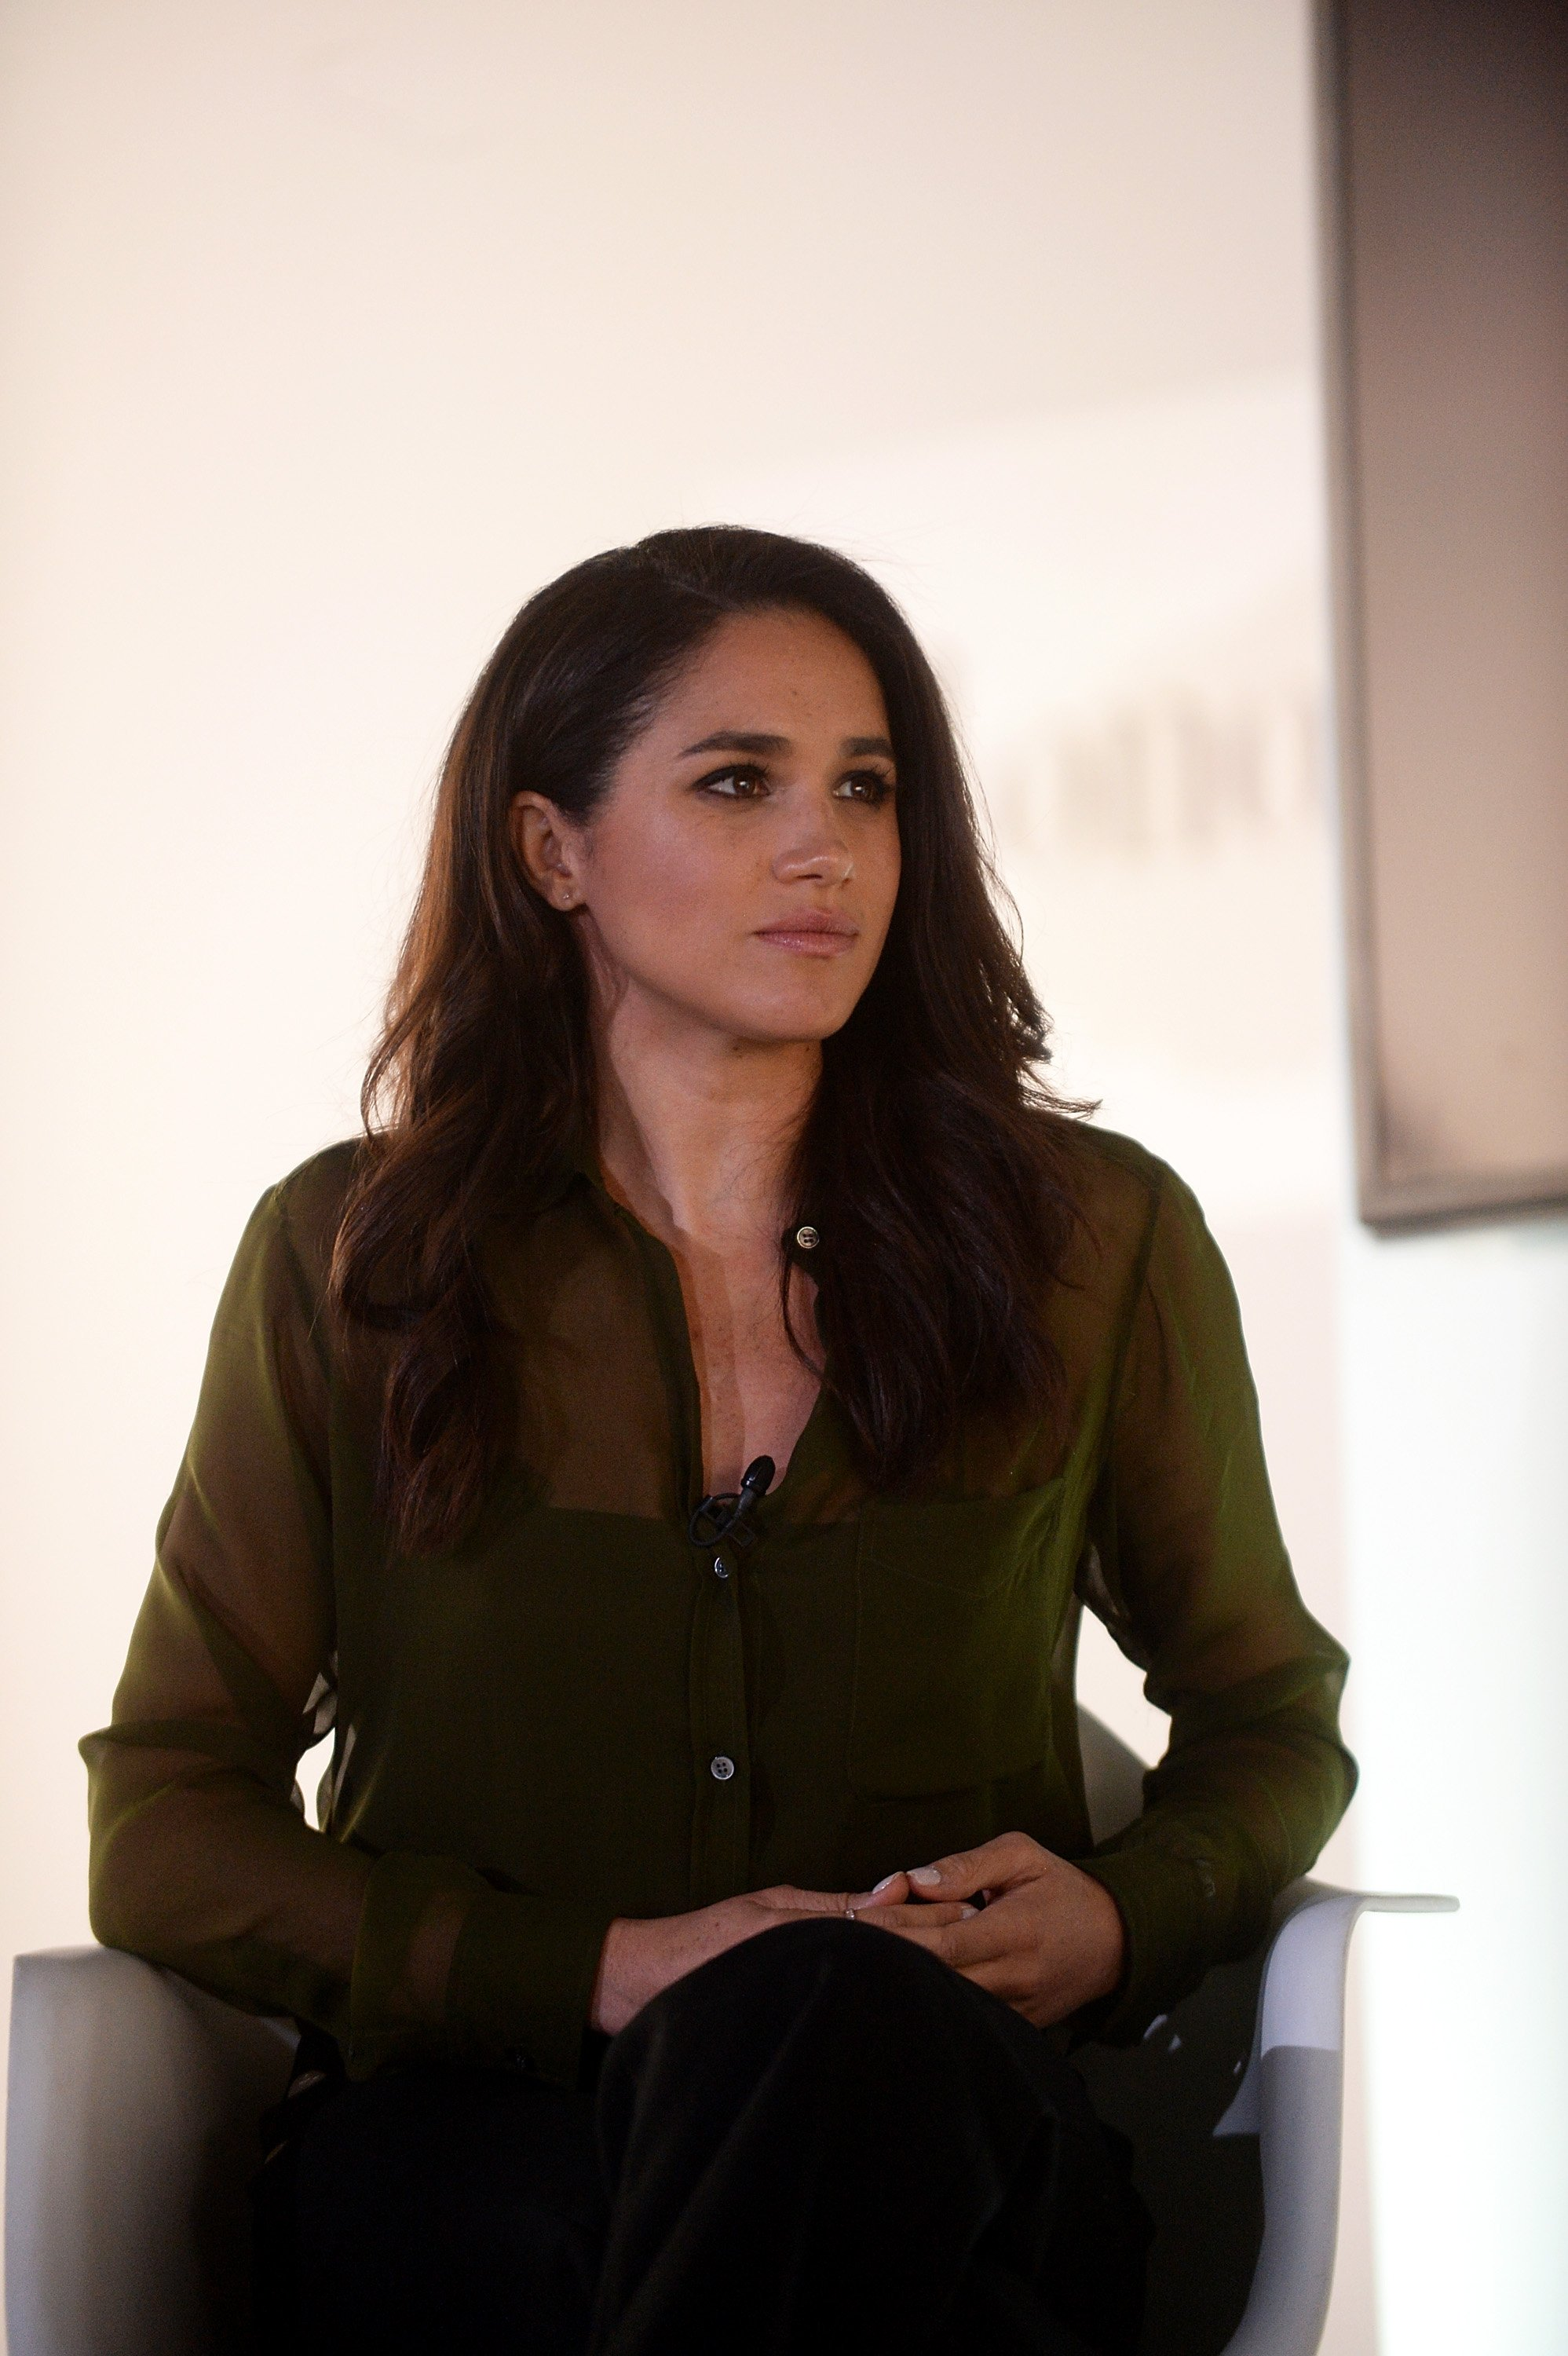 Meghan Markle attends REEBOK #HonorYourDays at Reebok Headquarters on April 28, 2016 in Canton, Massachusetts | Photo: Getty Images